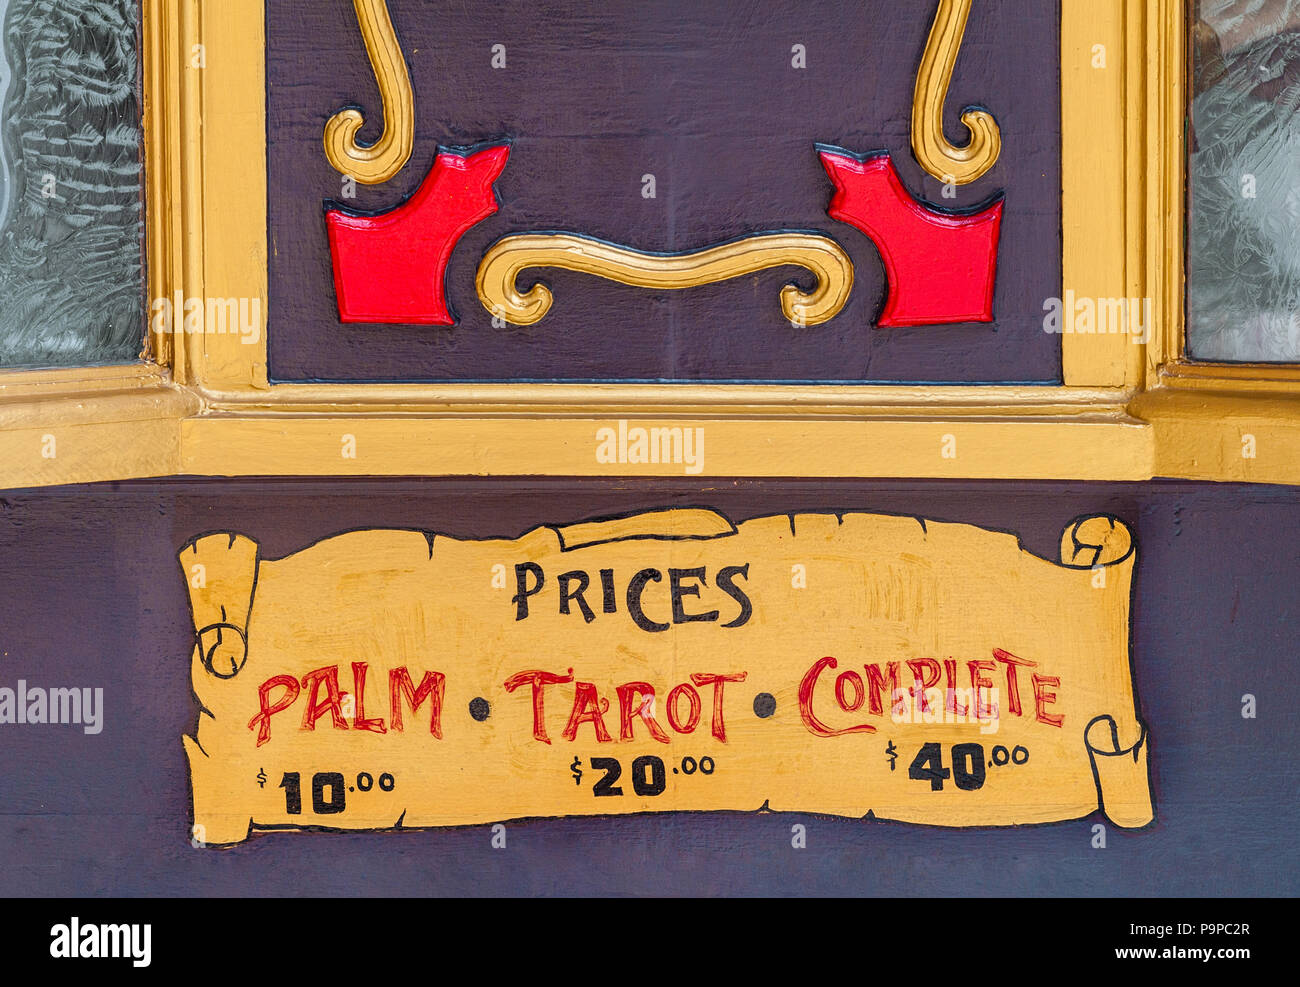 Close-up details of traveling carnival fortune teller or psychic sign with vintage lettering and old peeling paint. Colorful signage for a palm reader. - Stock Image